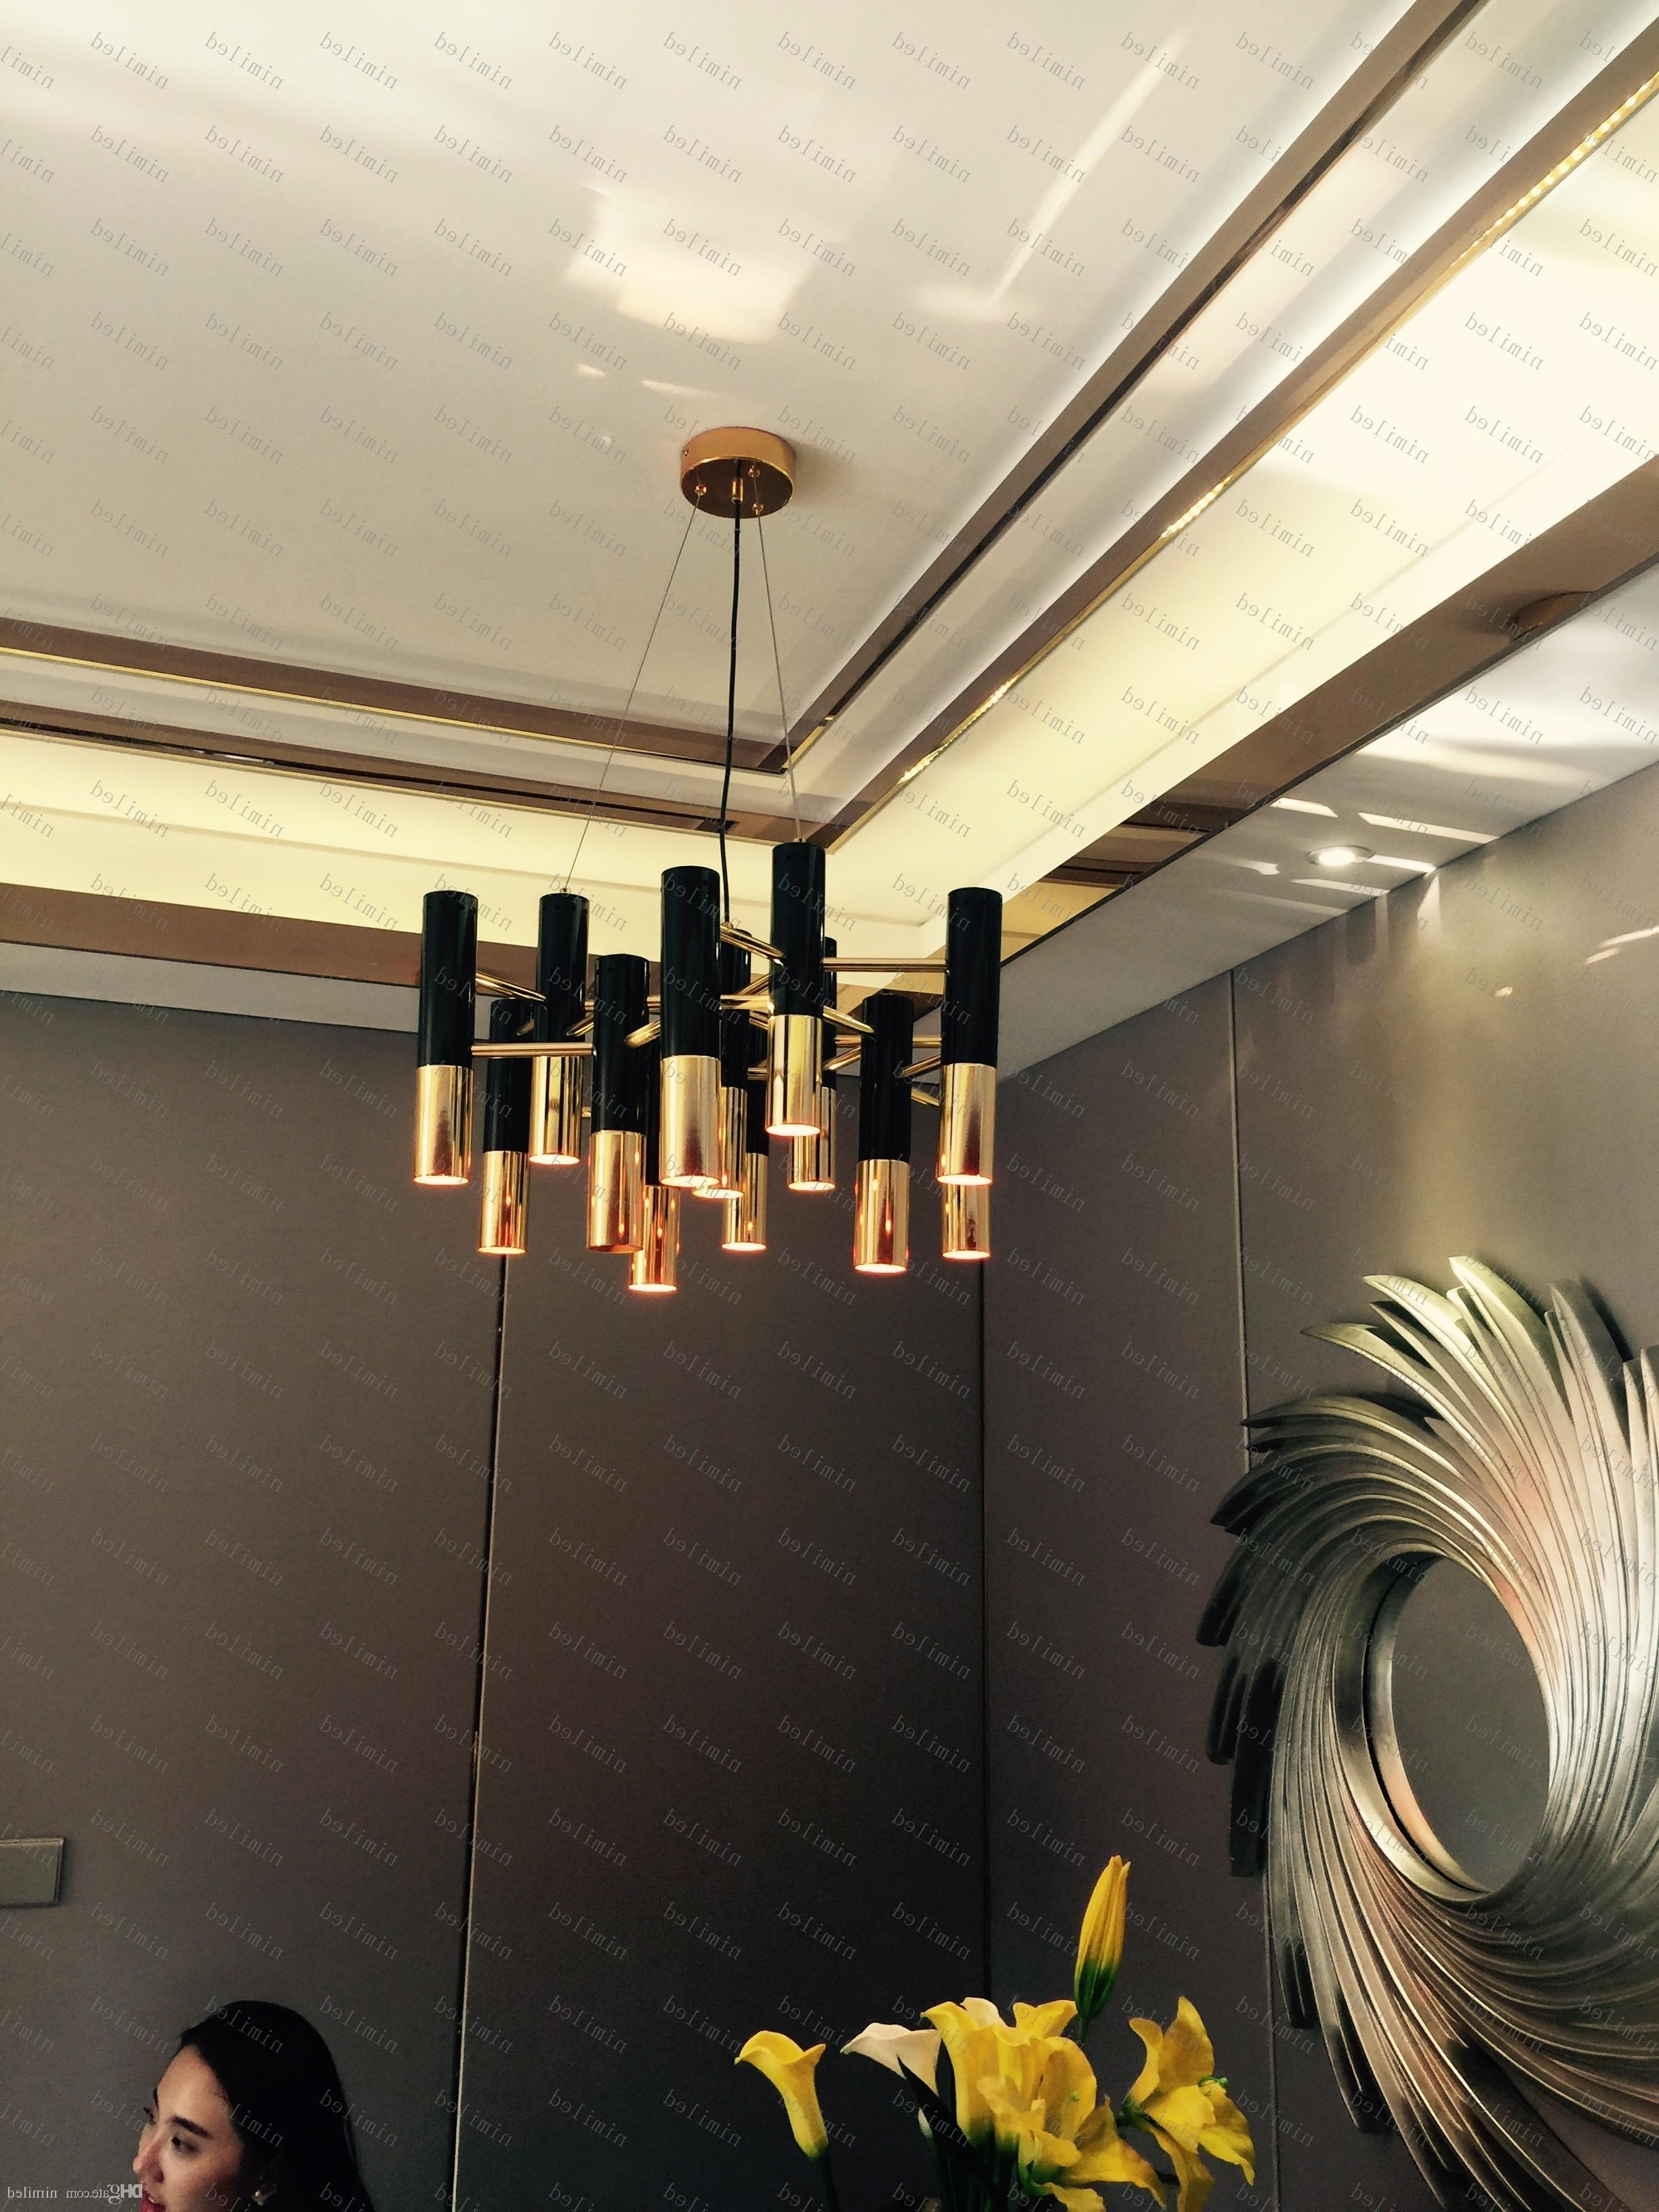 Most Recently Released Nimi774 Modern Design Delightfull Ike Chandelier Pendant Lamp Pertaining To Chandelier Lights For Living Room (View 11 of 15)